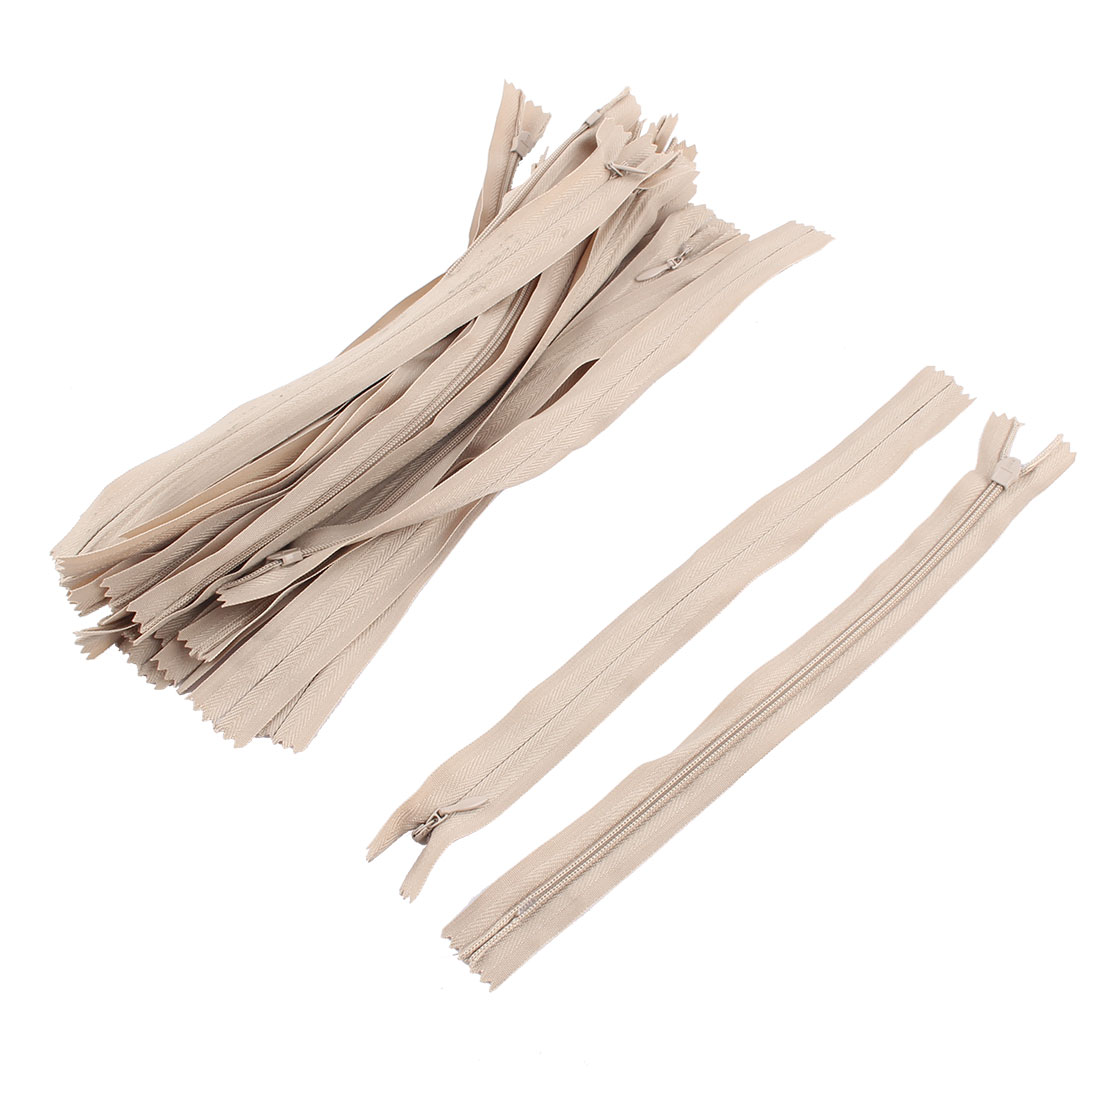 Sewing Oval Pull Tab Invisible Style Clothing Trousers Zipper Tan 25cm Length 24pcs